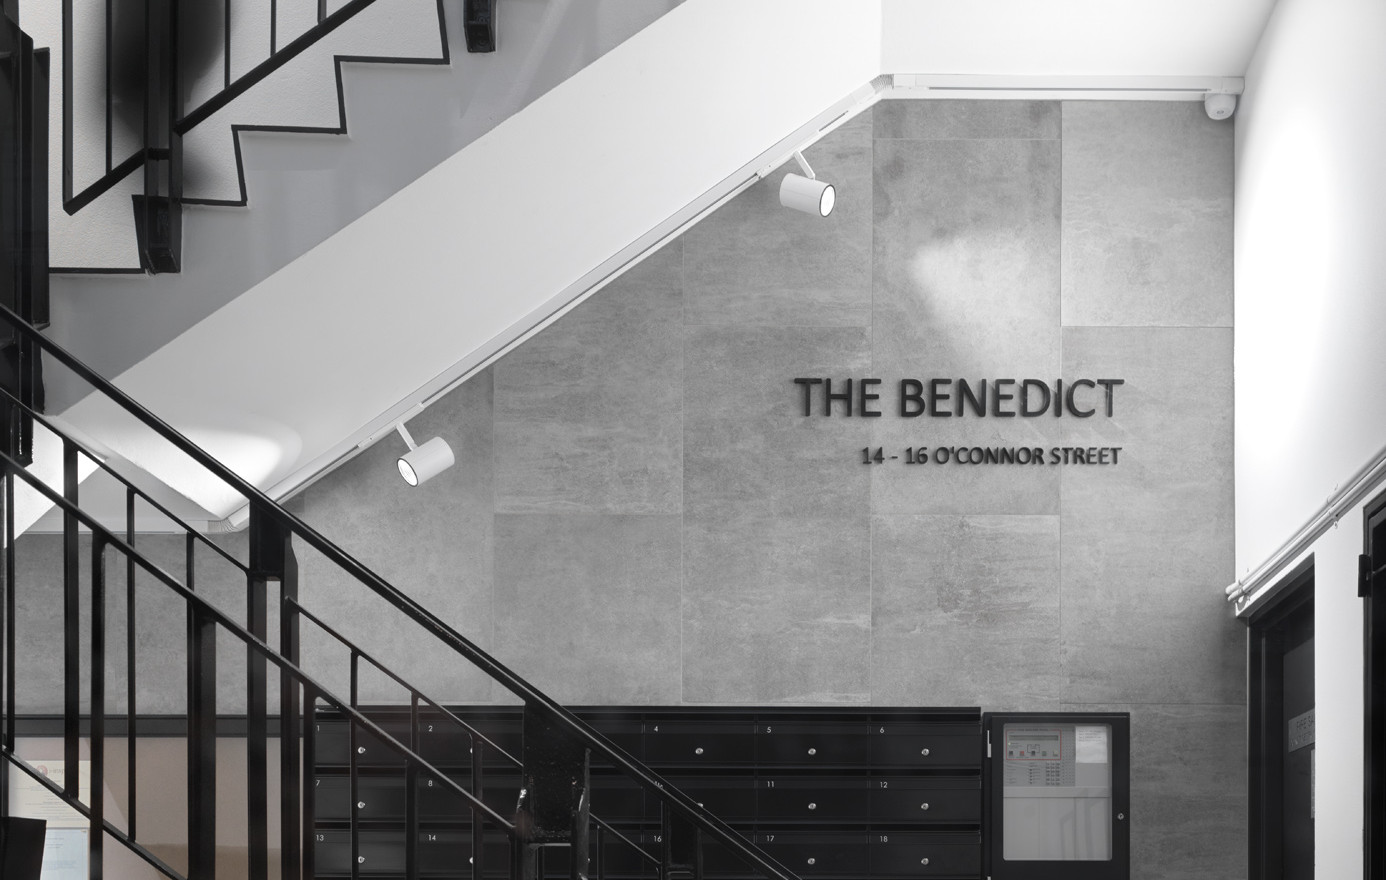 The Benedict - Strata Refurbishment